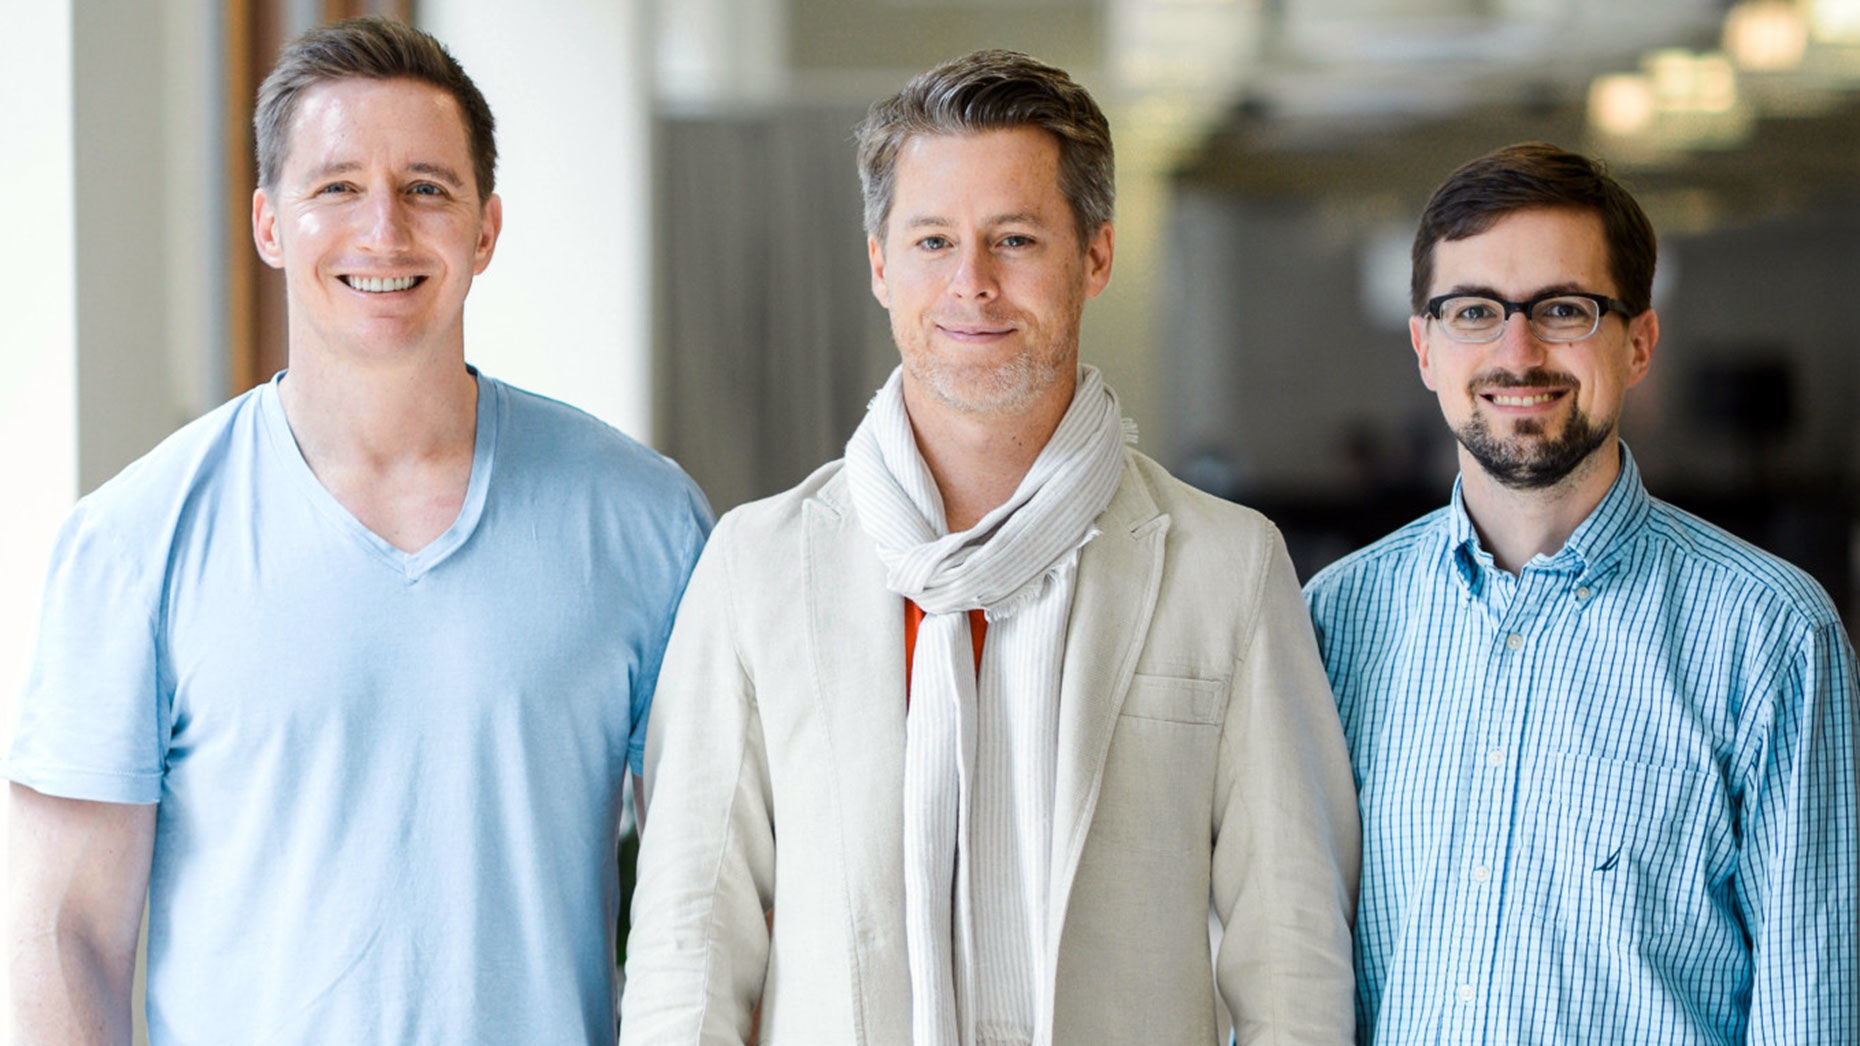 Cockroach Labs co-founders (from left): Peter Mattis, Spencer Kimball, and Ben Darnell. Photo by Cockroach Labs.